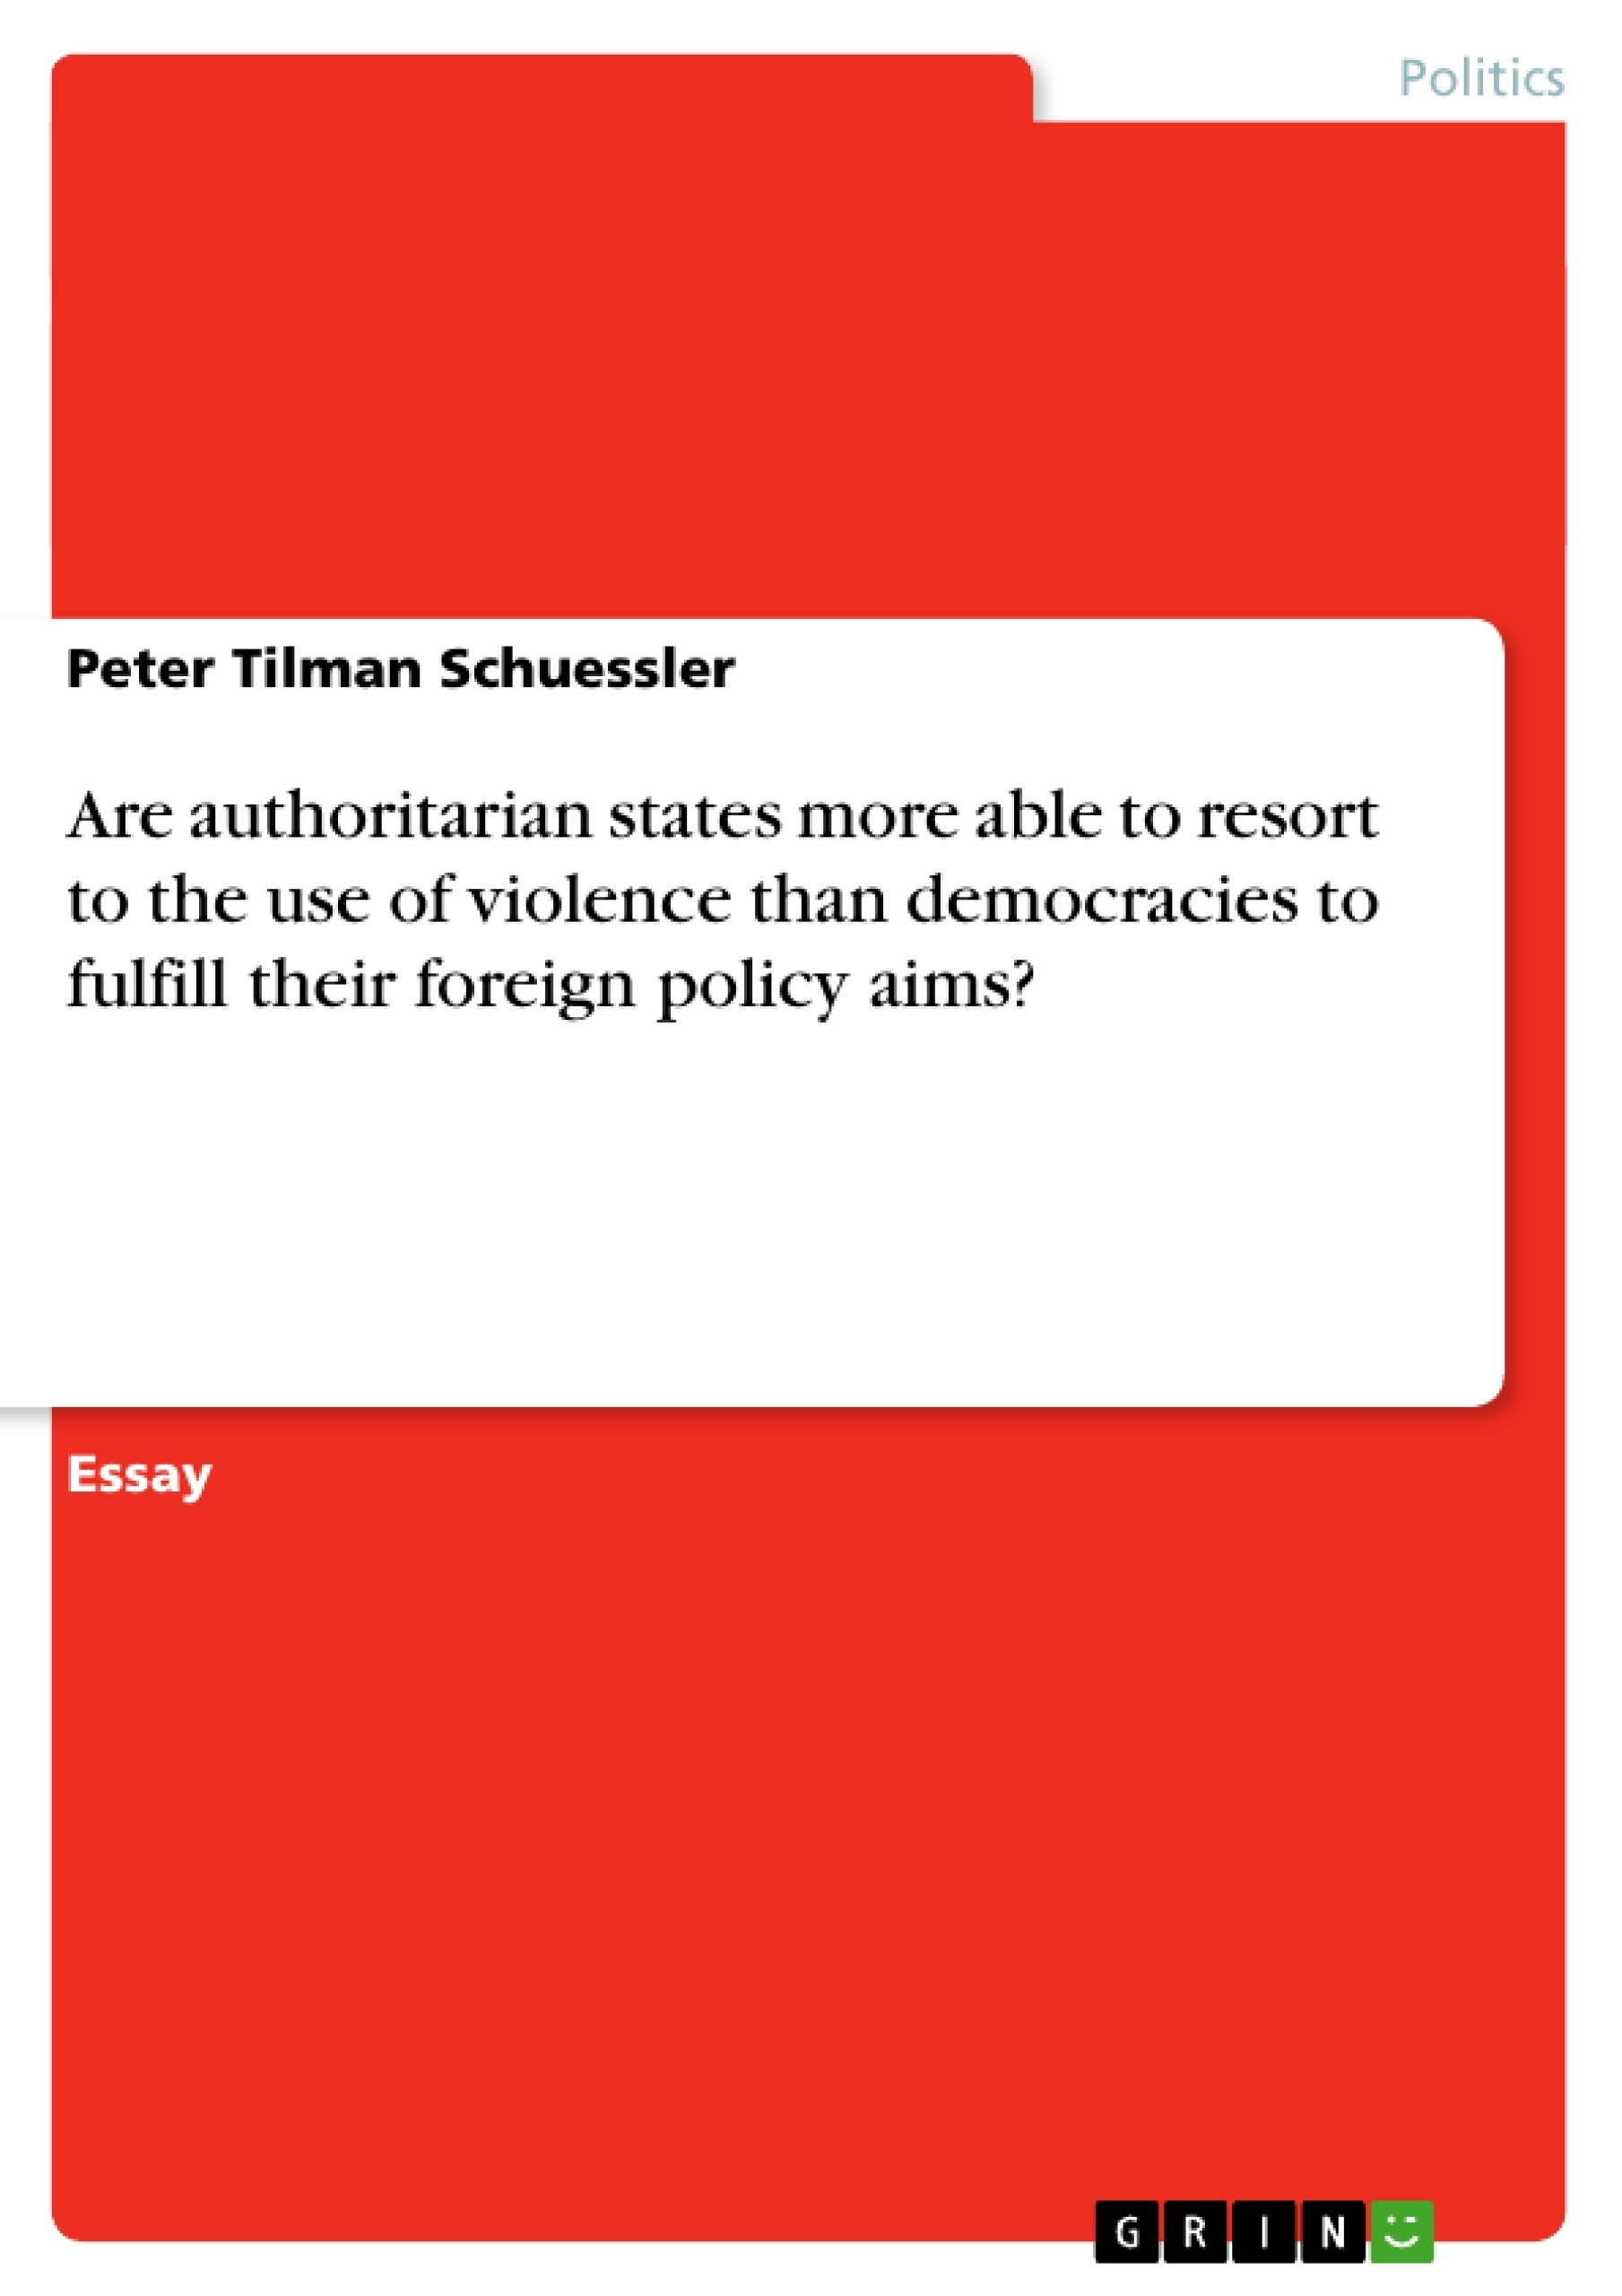 Title: Are authoritarian states more able to resort to the use of violence than democracies to fulfill their foreign policy aims?